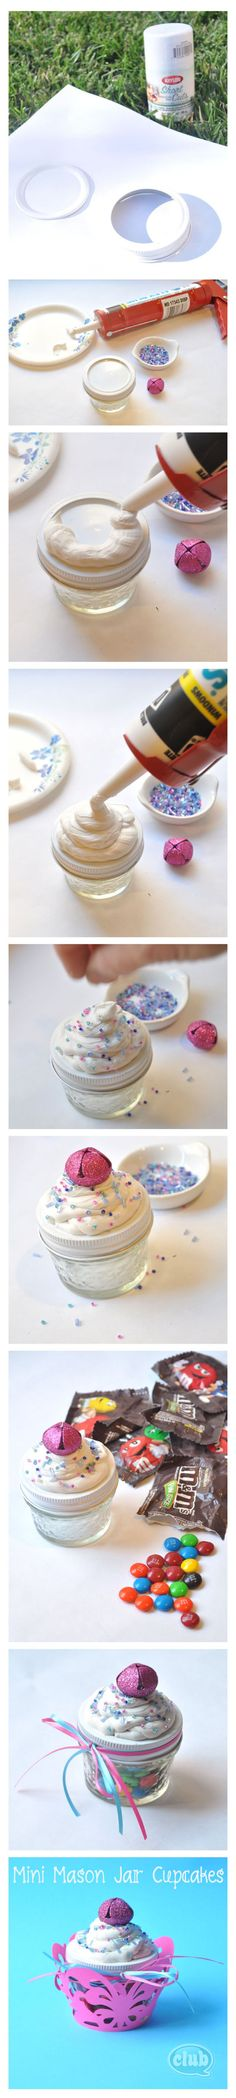 Mini Mason Jar Candy Cupcakes DIY craft